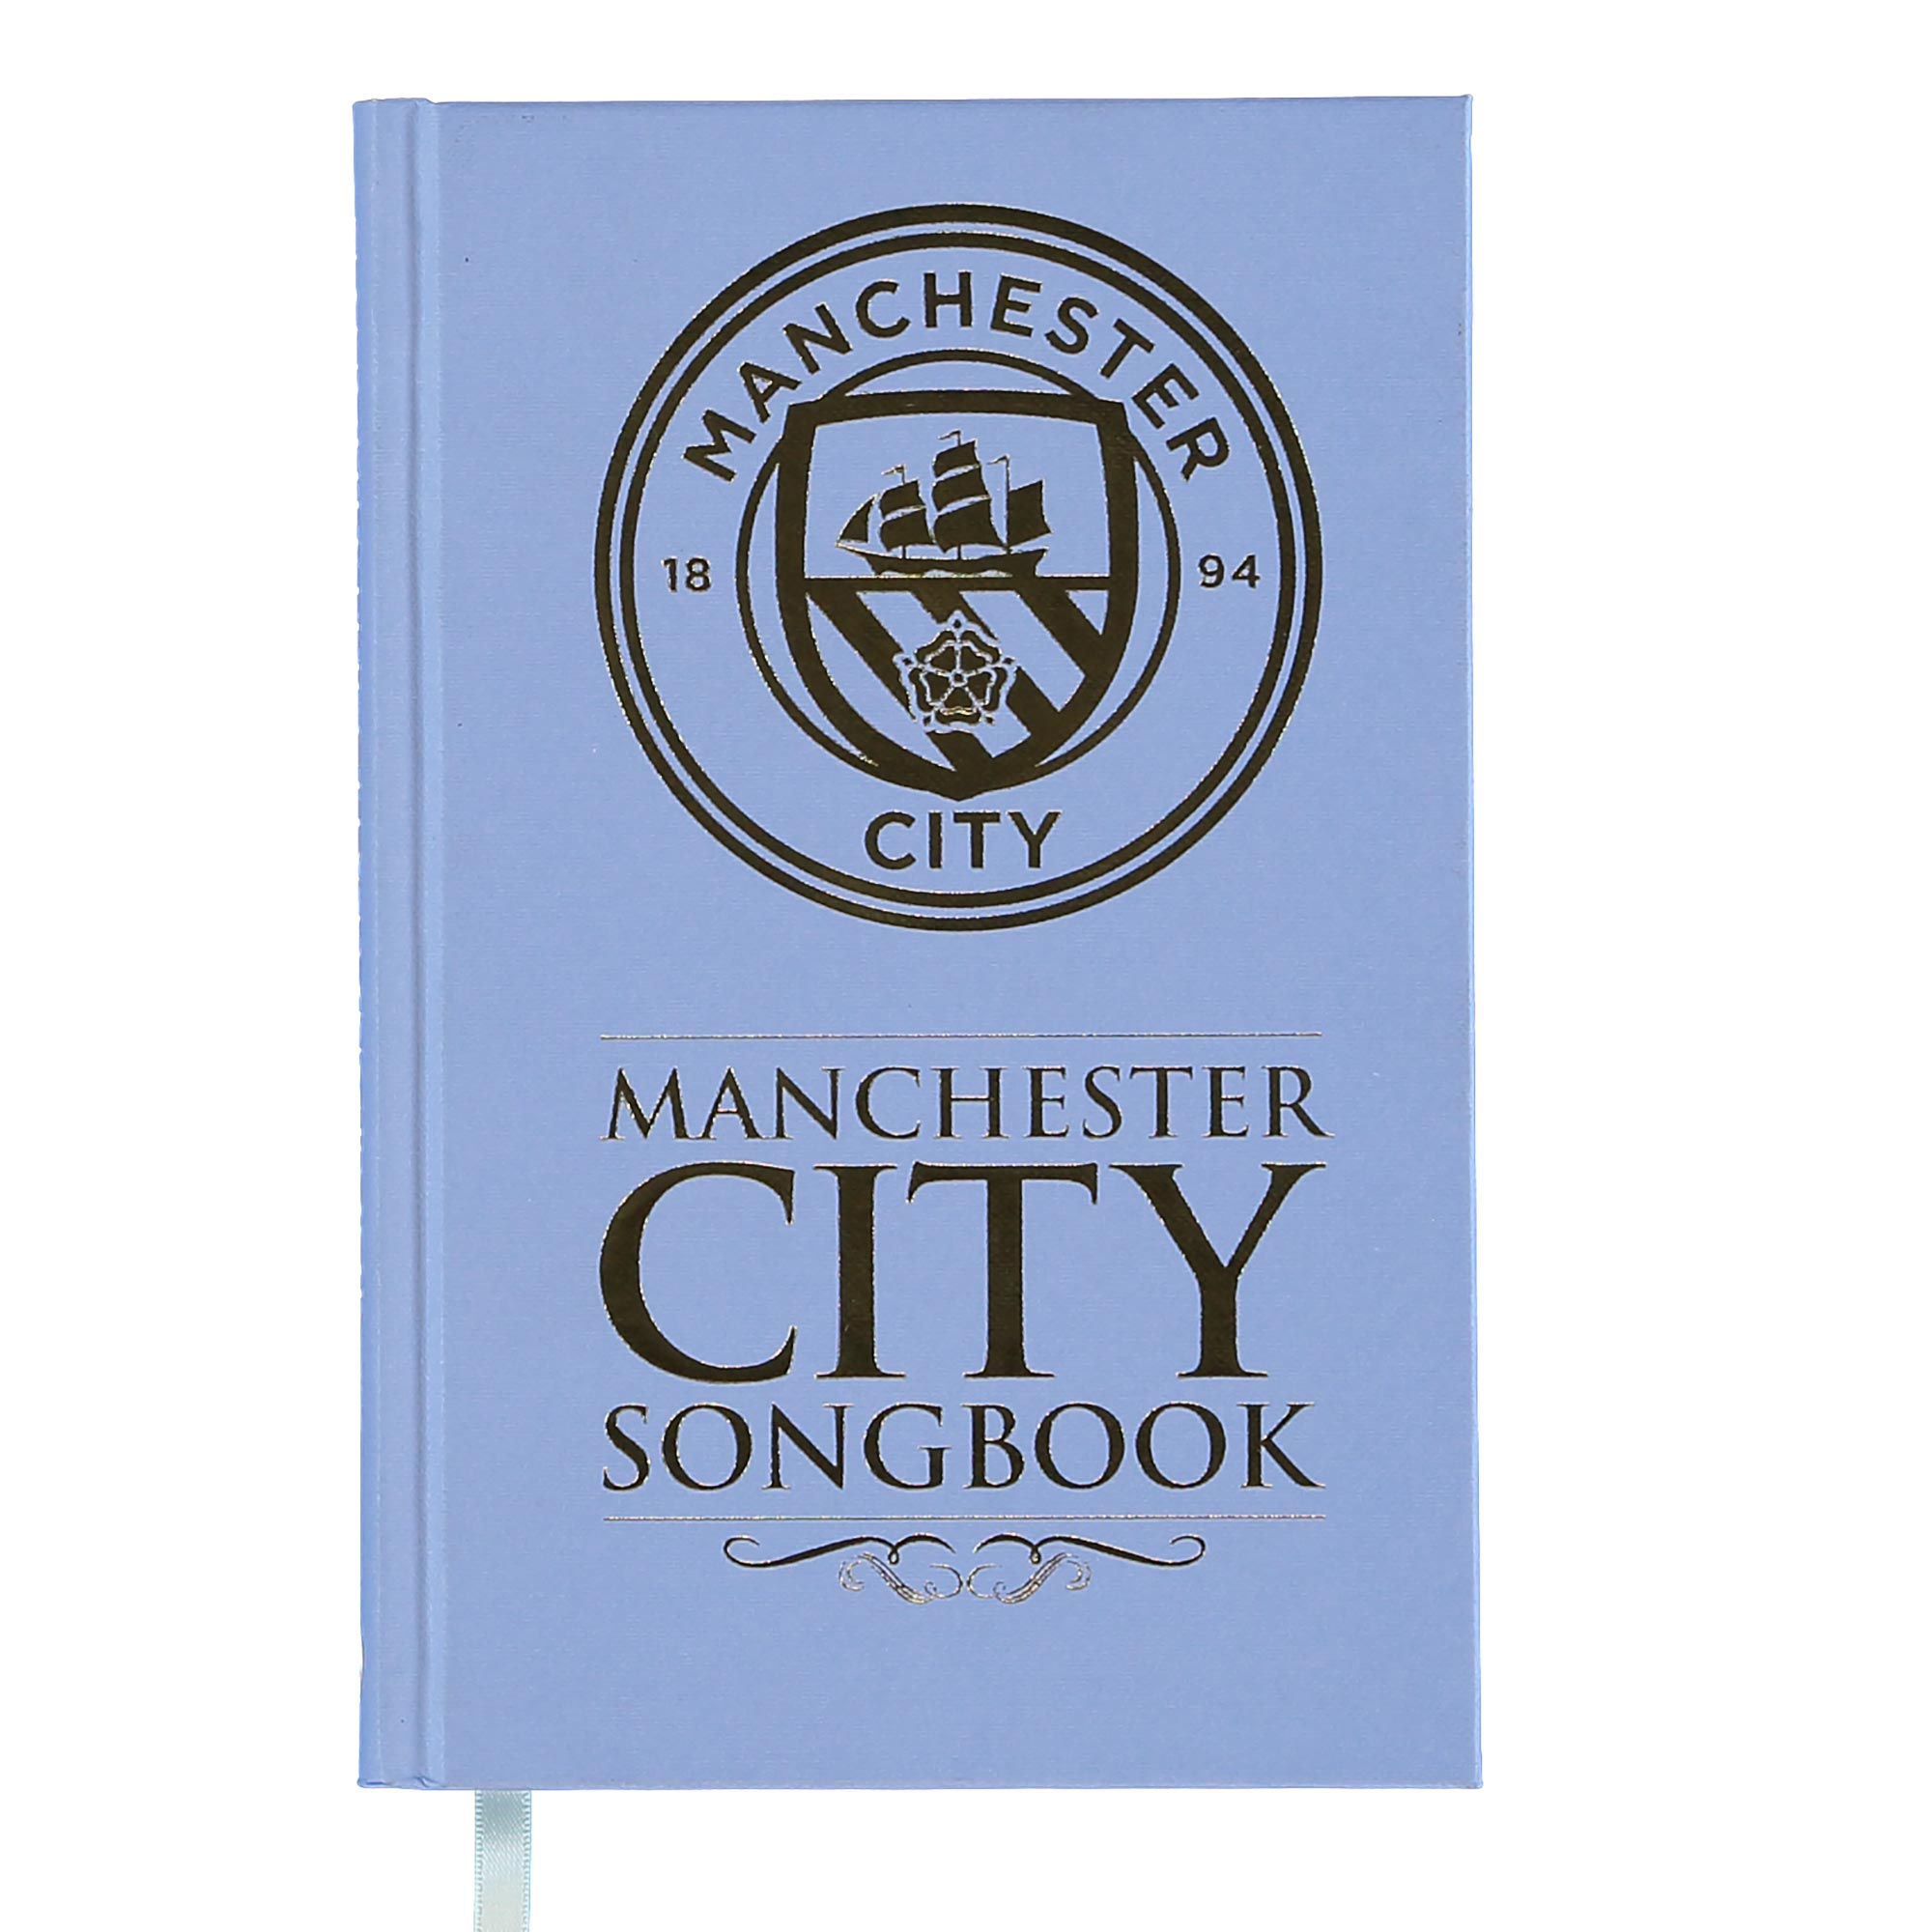 Manchester City Songbook - 2nd Edition